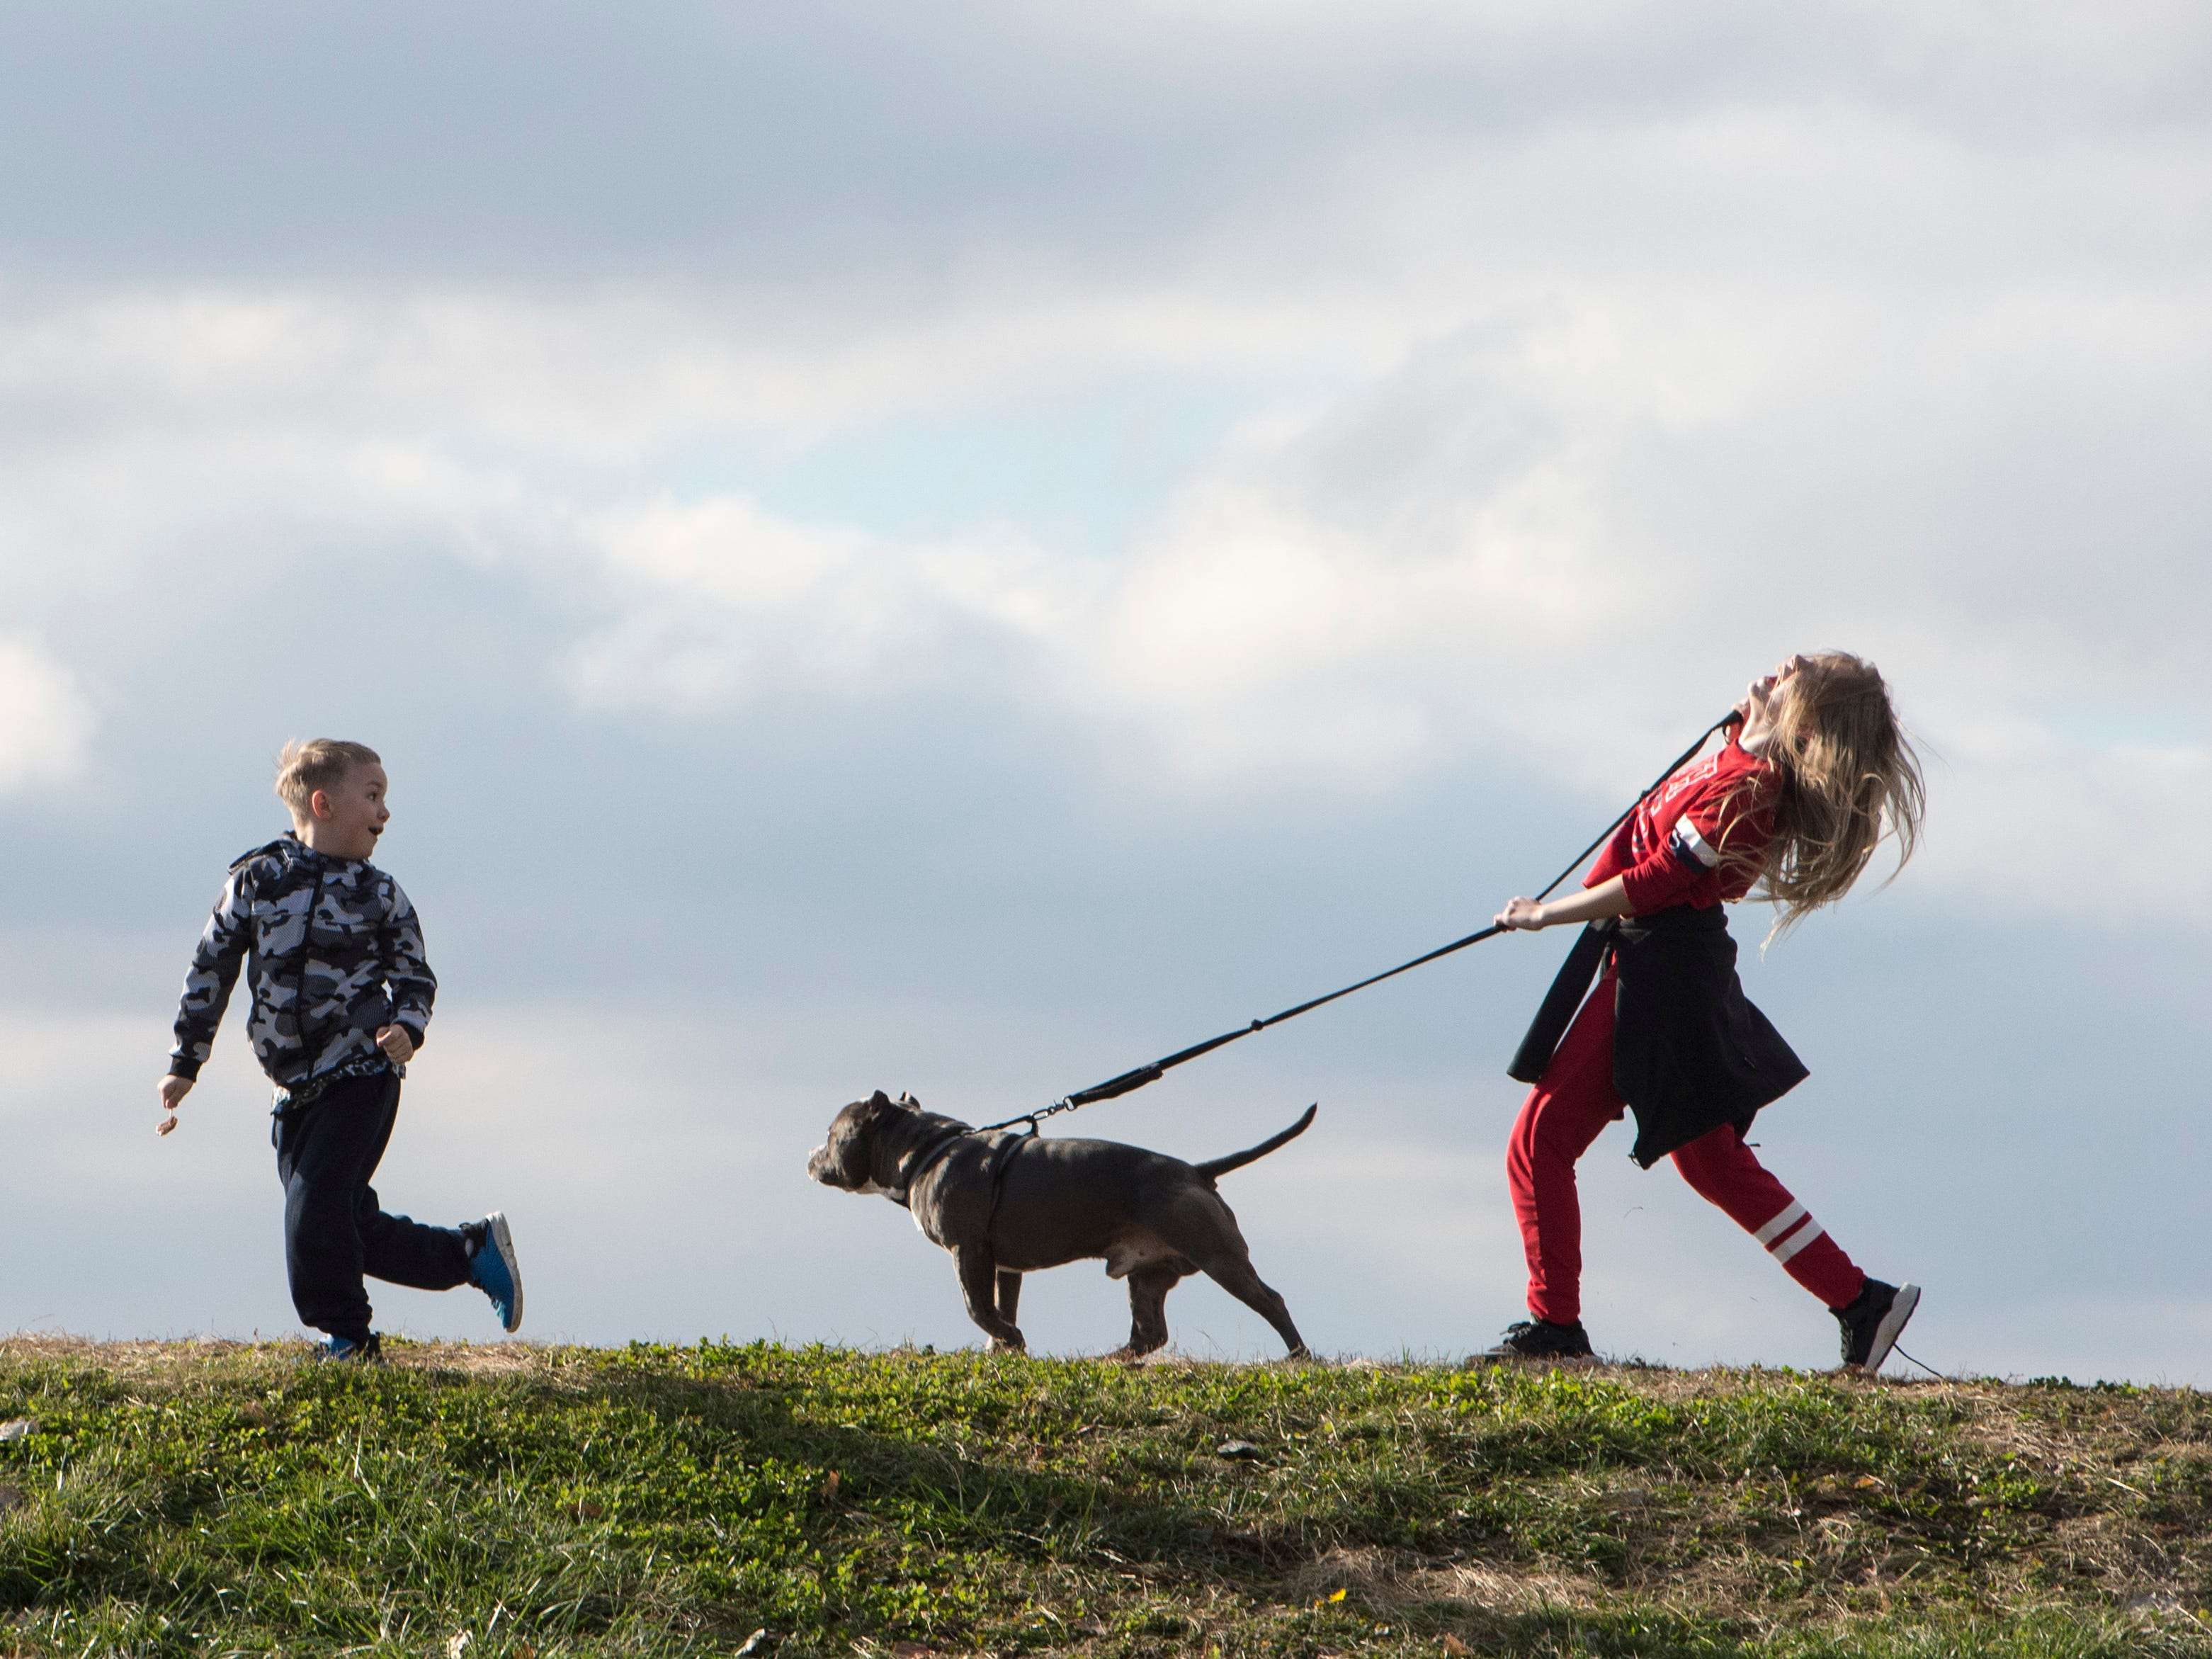 Hunter Pryor, 7, runs ahead as Kalise Vincent, 11, attempts to control their dog, Wallie, while talking a stroll down the Greenway Friday, Dec. 28, 2018.